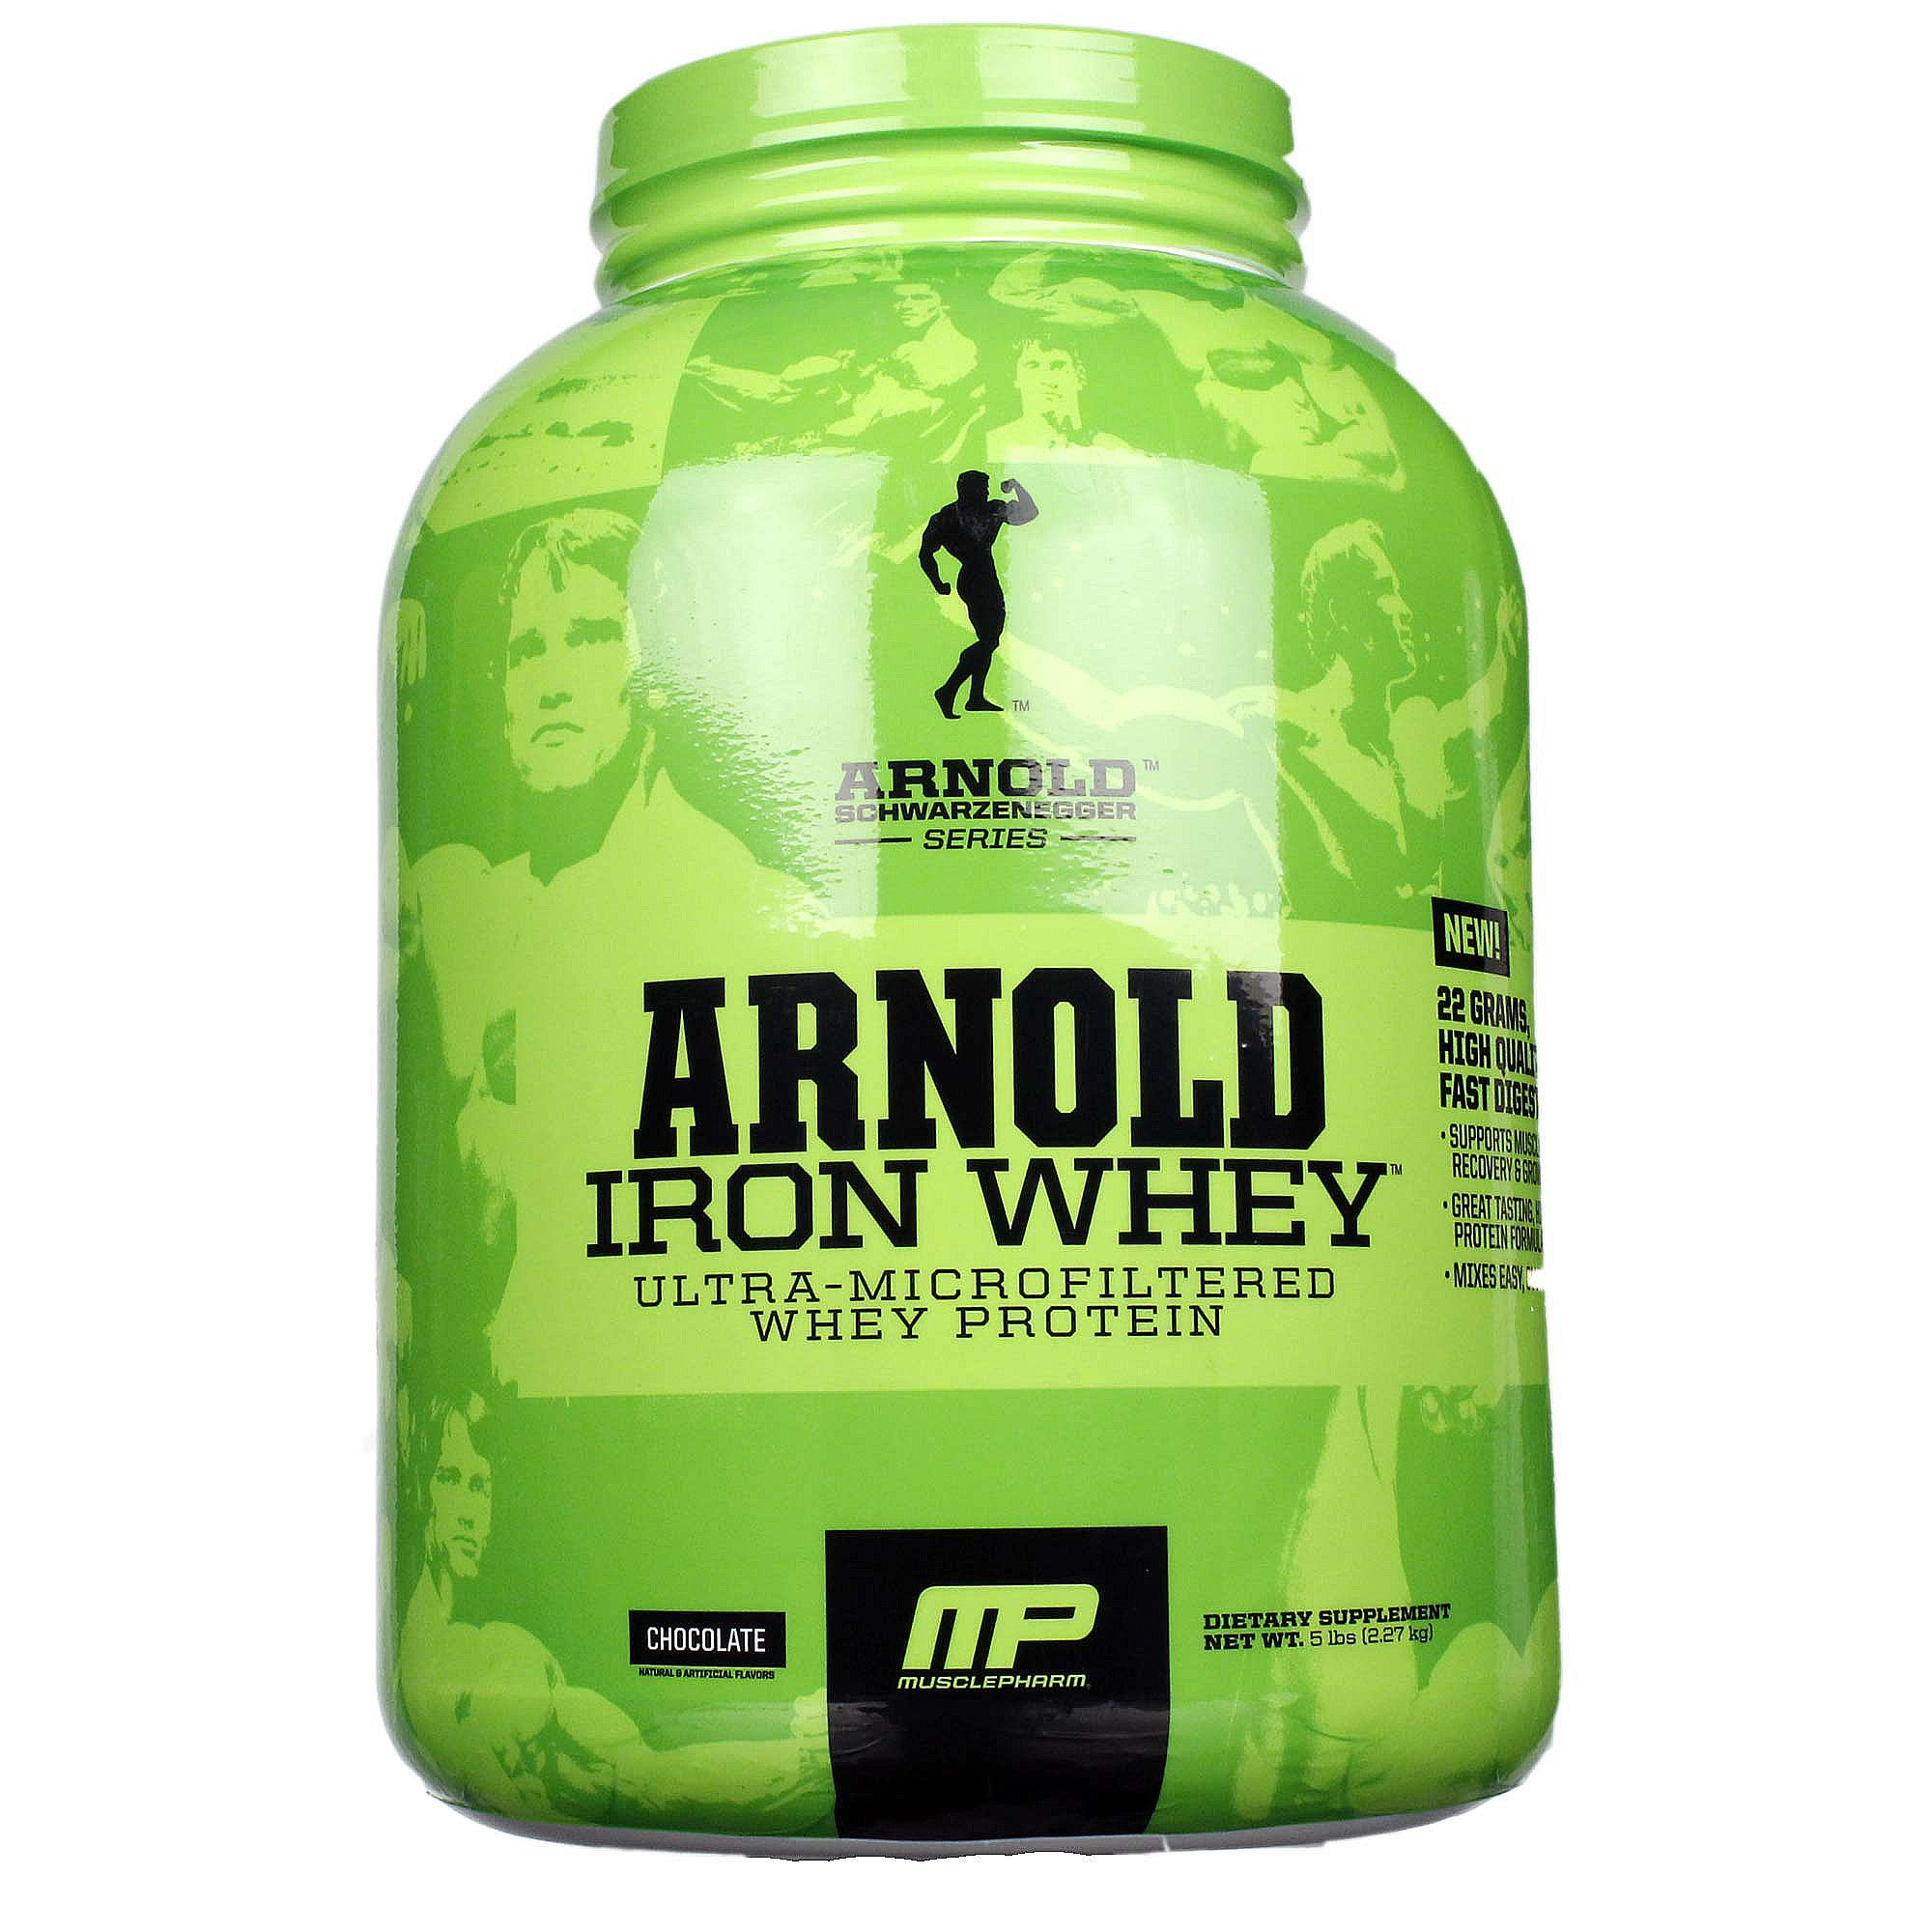 Musclepharm iron whey review